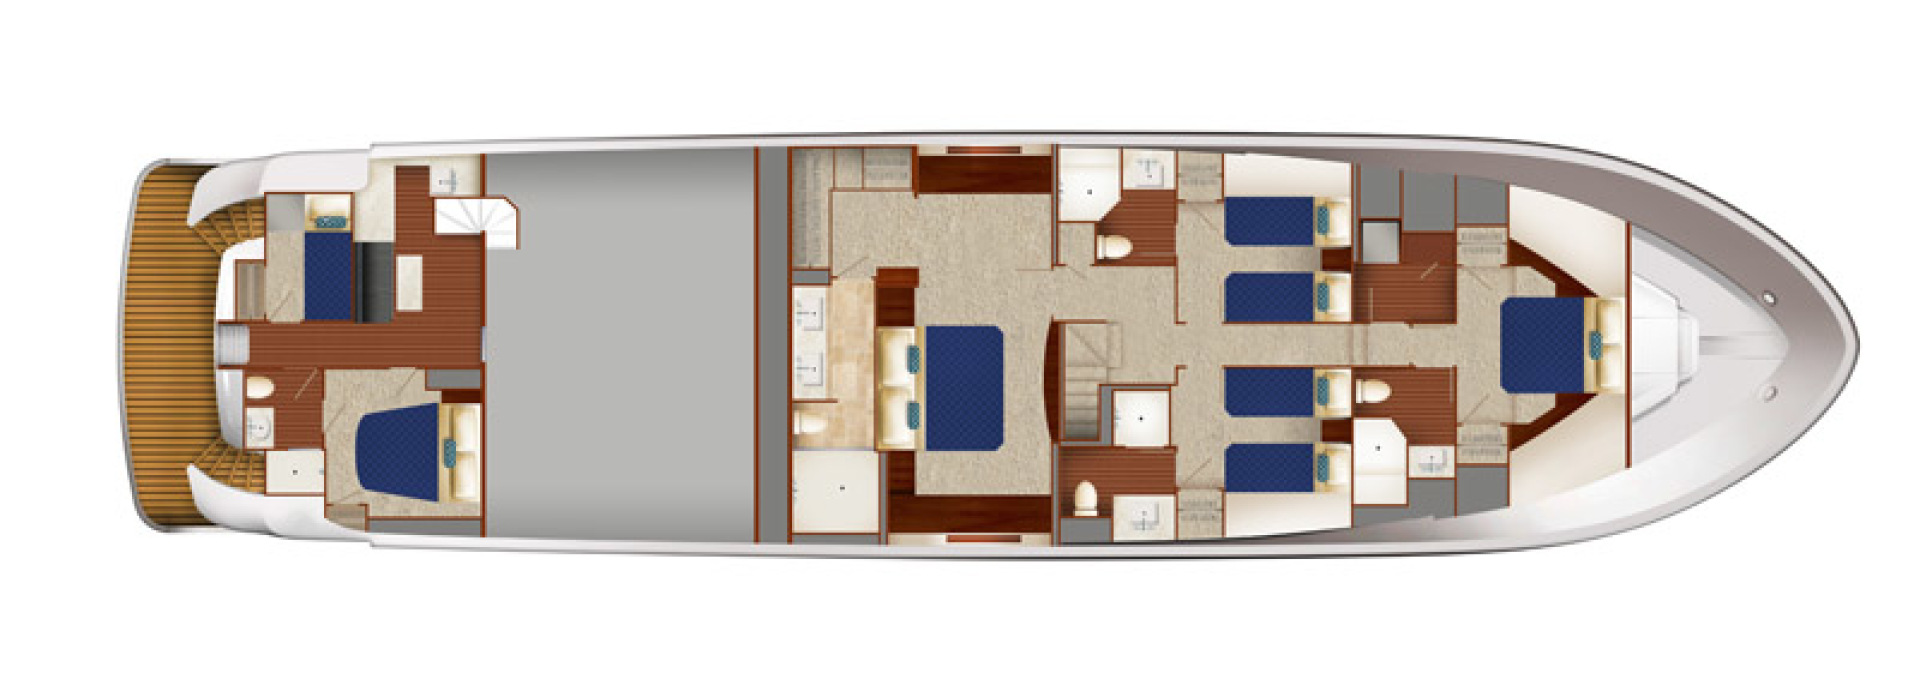 Hatteras-M90 Panacera 2020 -Cape May-New Jersey-United States-Layout Drawing-1084079 | Thumbnail